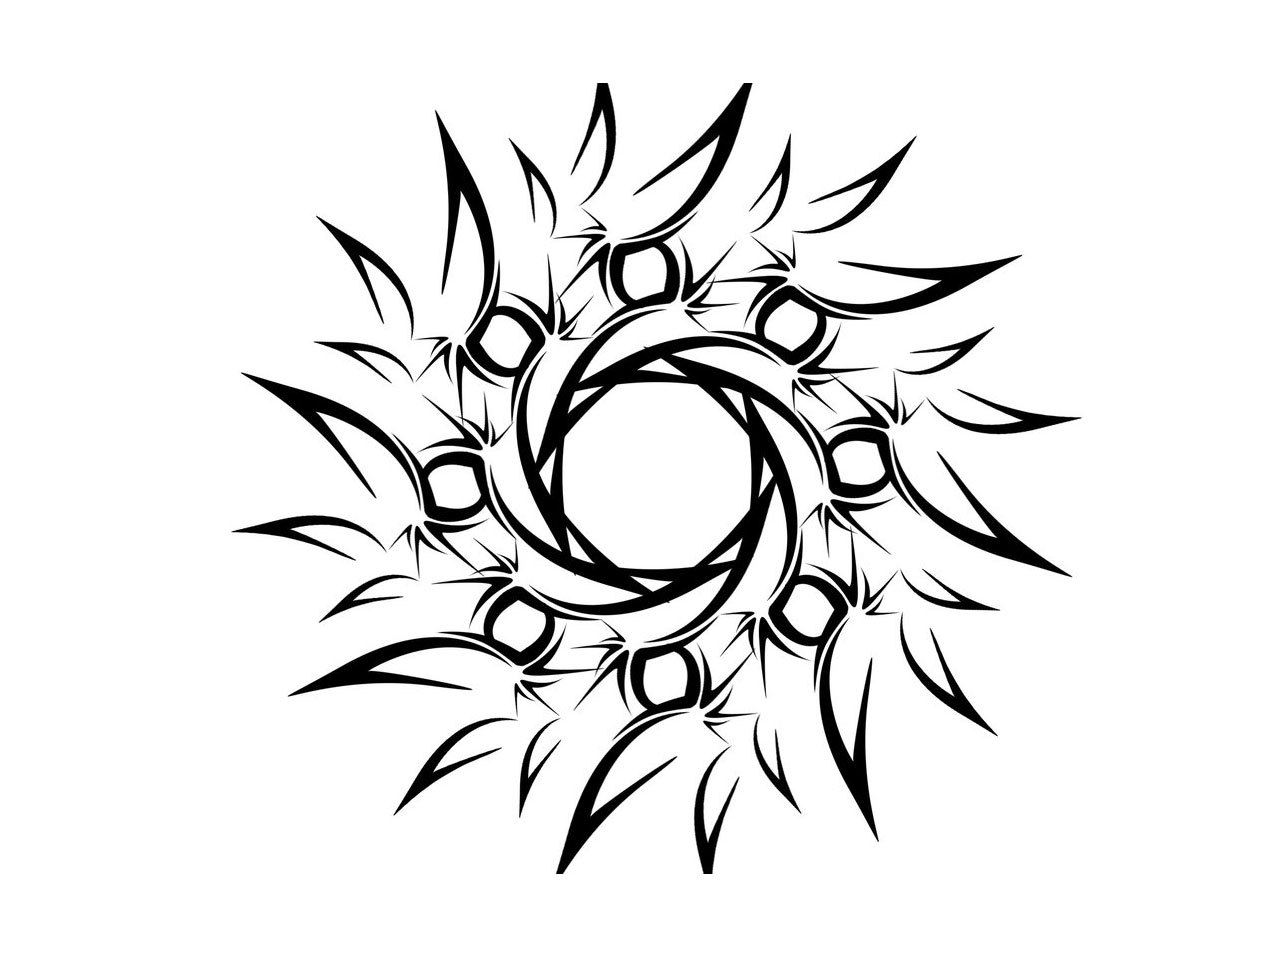 1280x960 Stylized Designs To Draw Designs To Draw Clipart Pie Cliparts